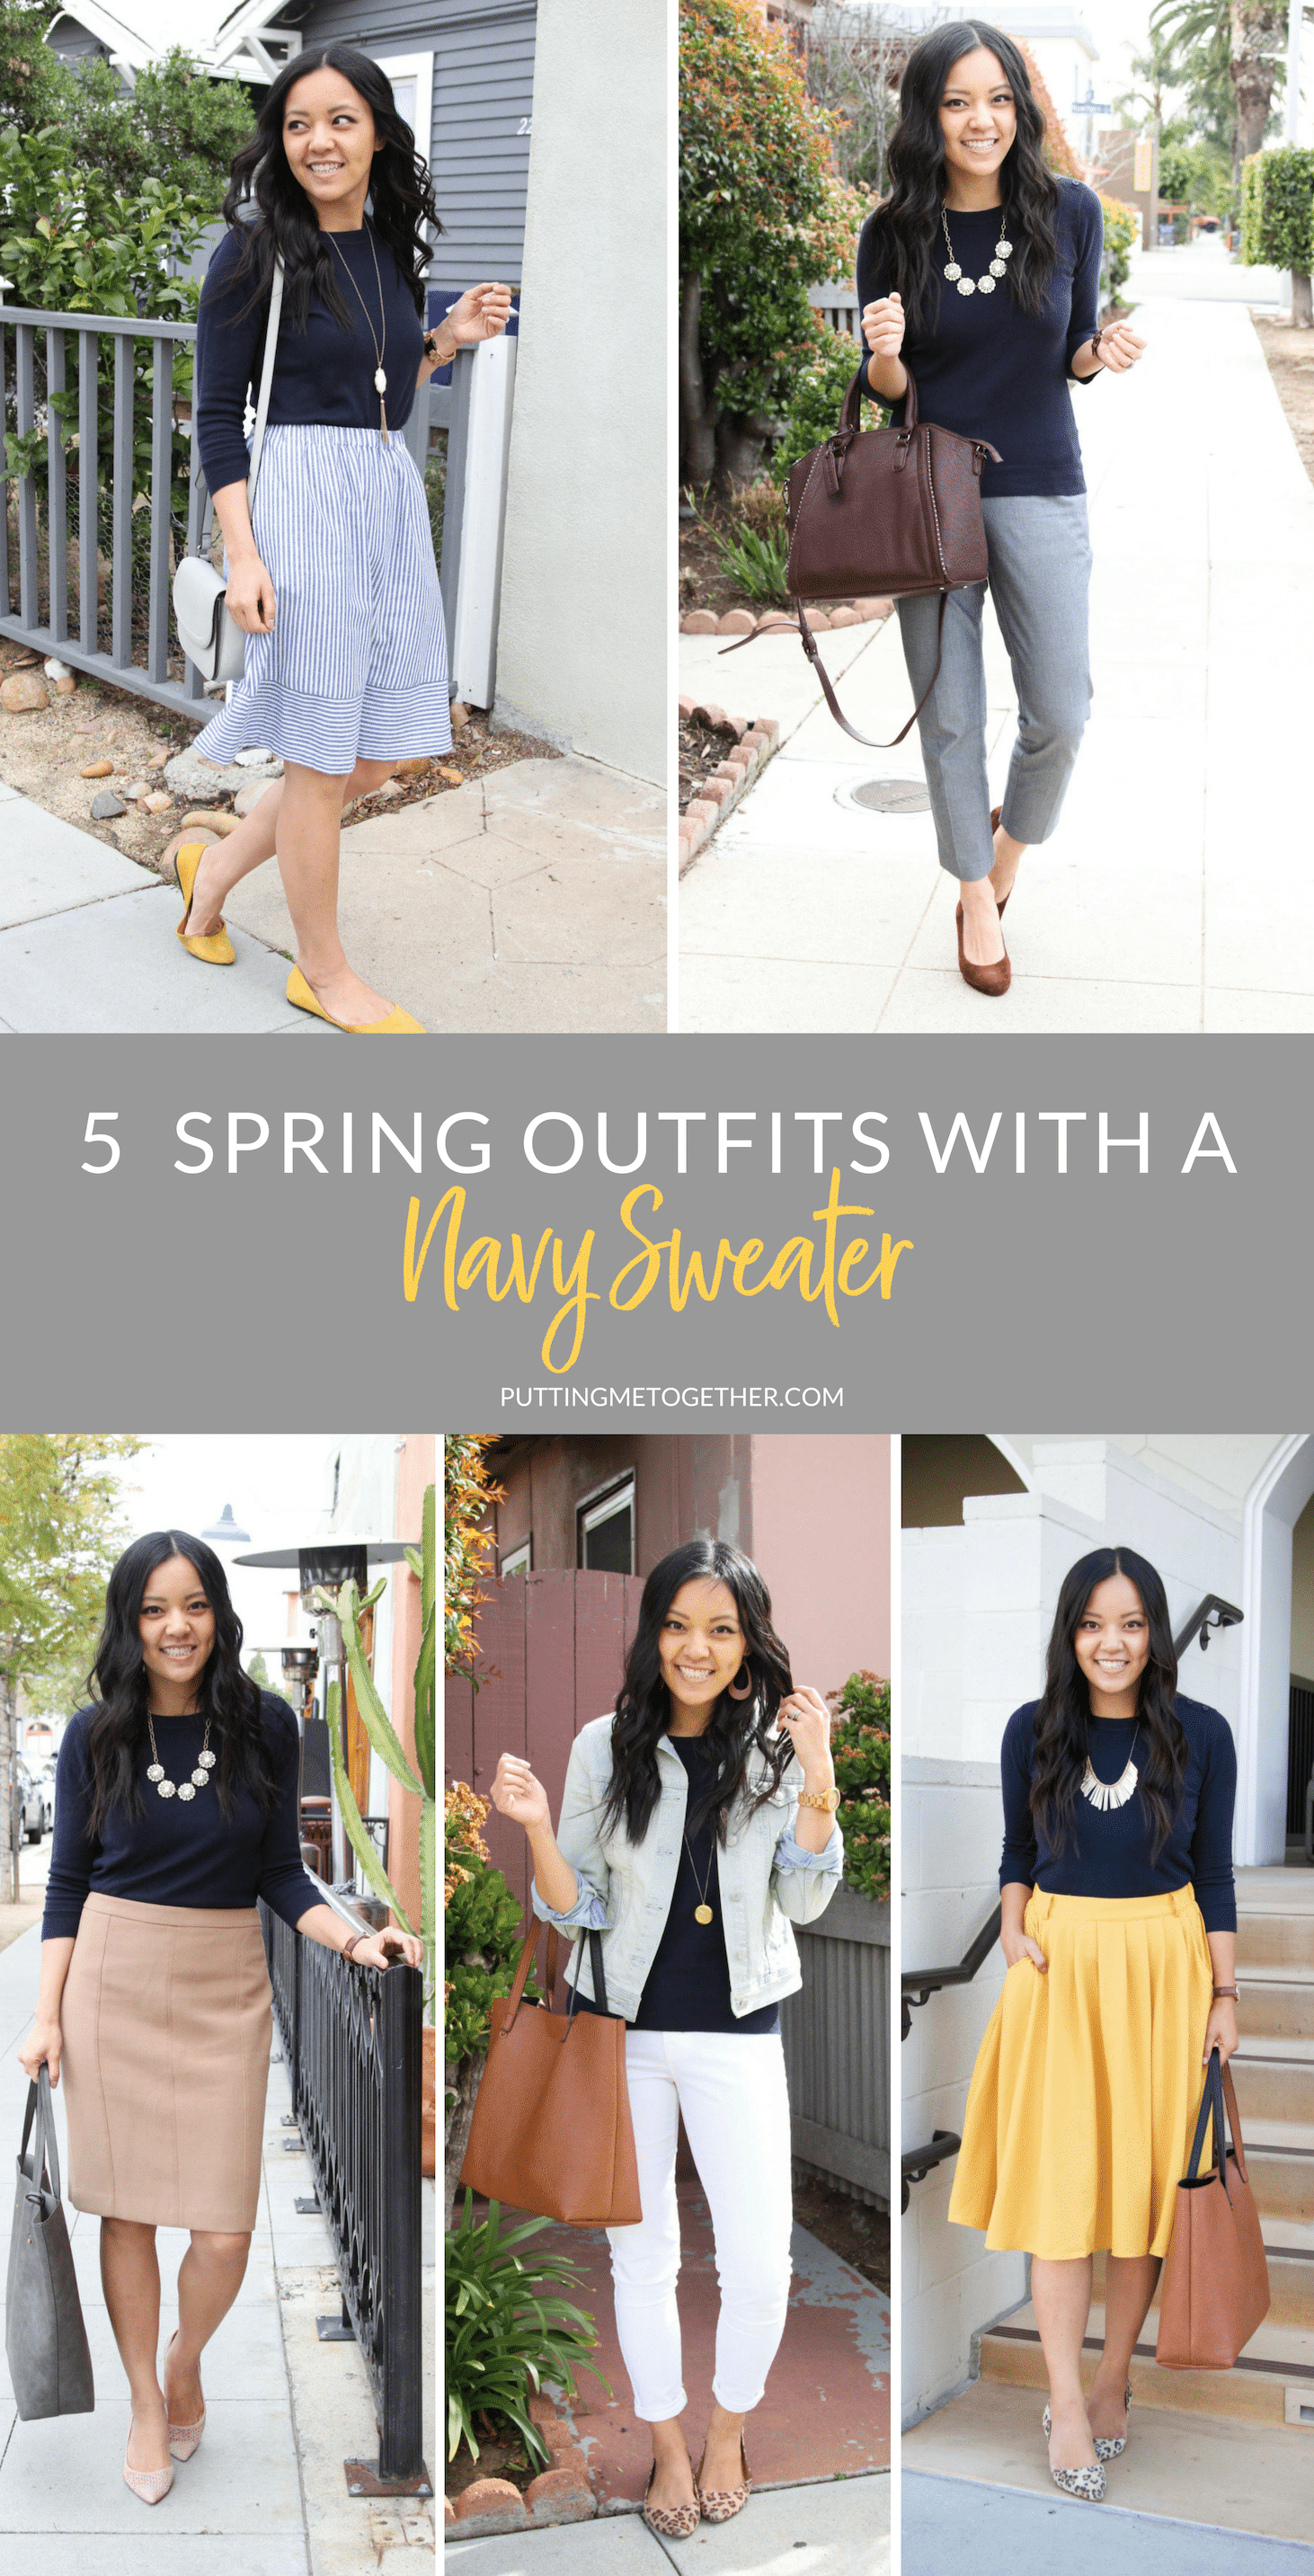 e59bd0cf49c Five Outfits With a Navy Sweater for Spring Weather